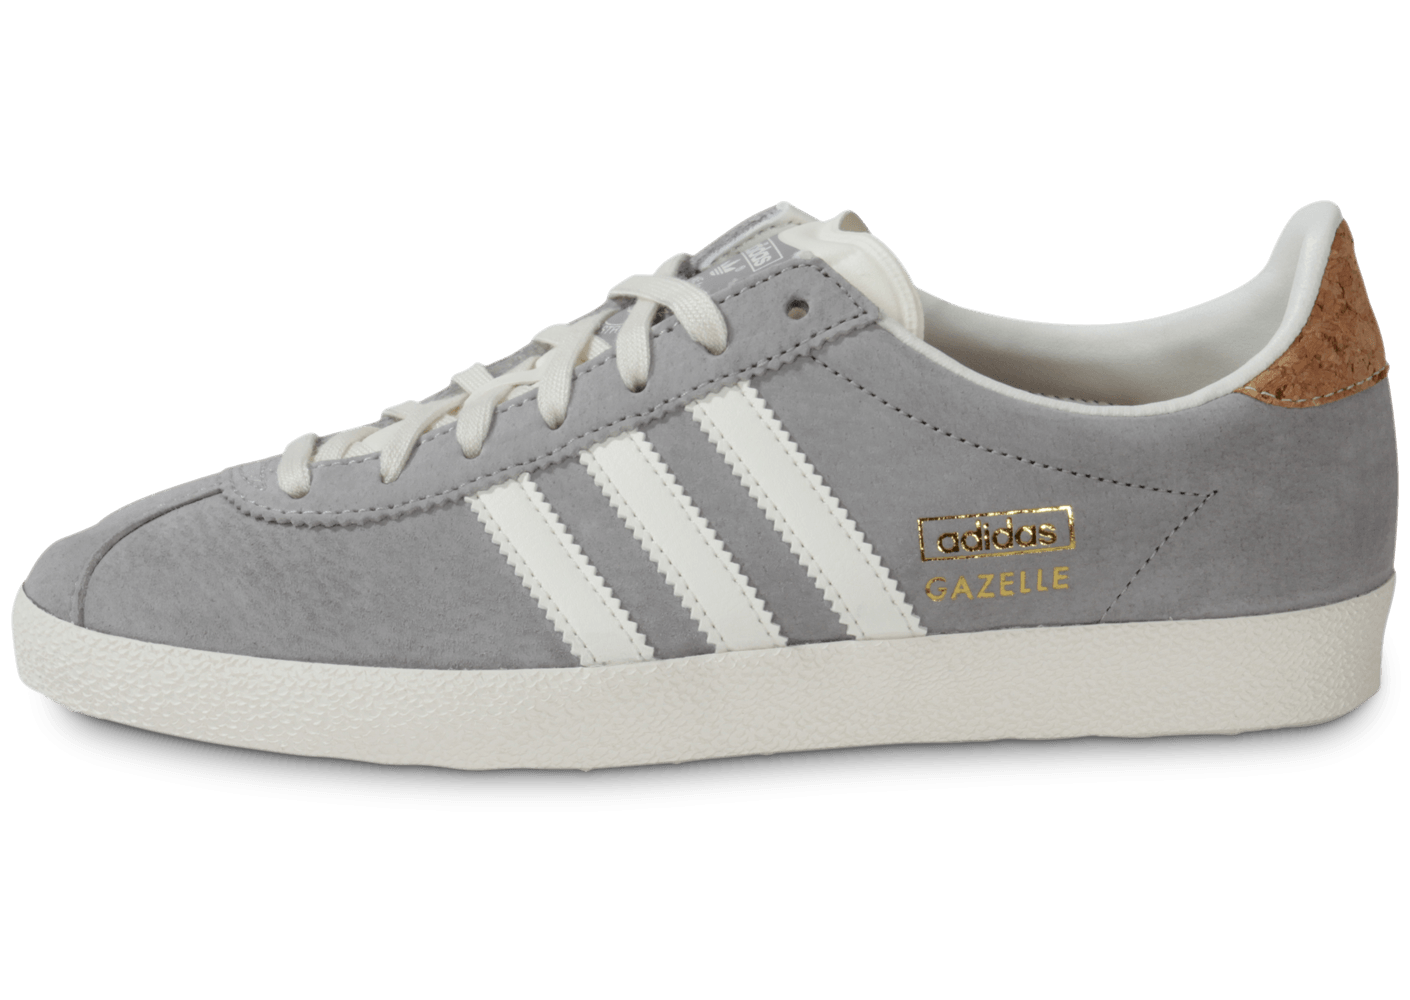 adidas gazelle og grise chaussures adidas chausport. Black Bedroom Furniture Sets. Home Design Ideas